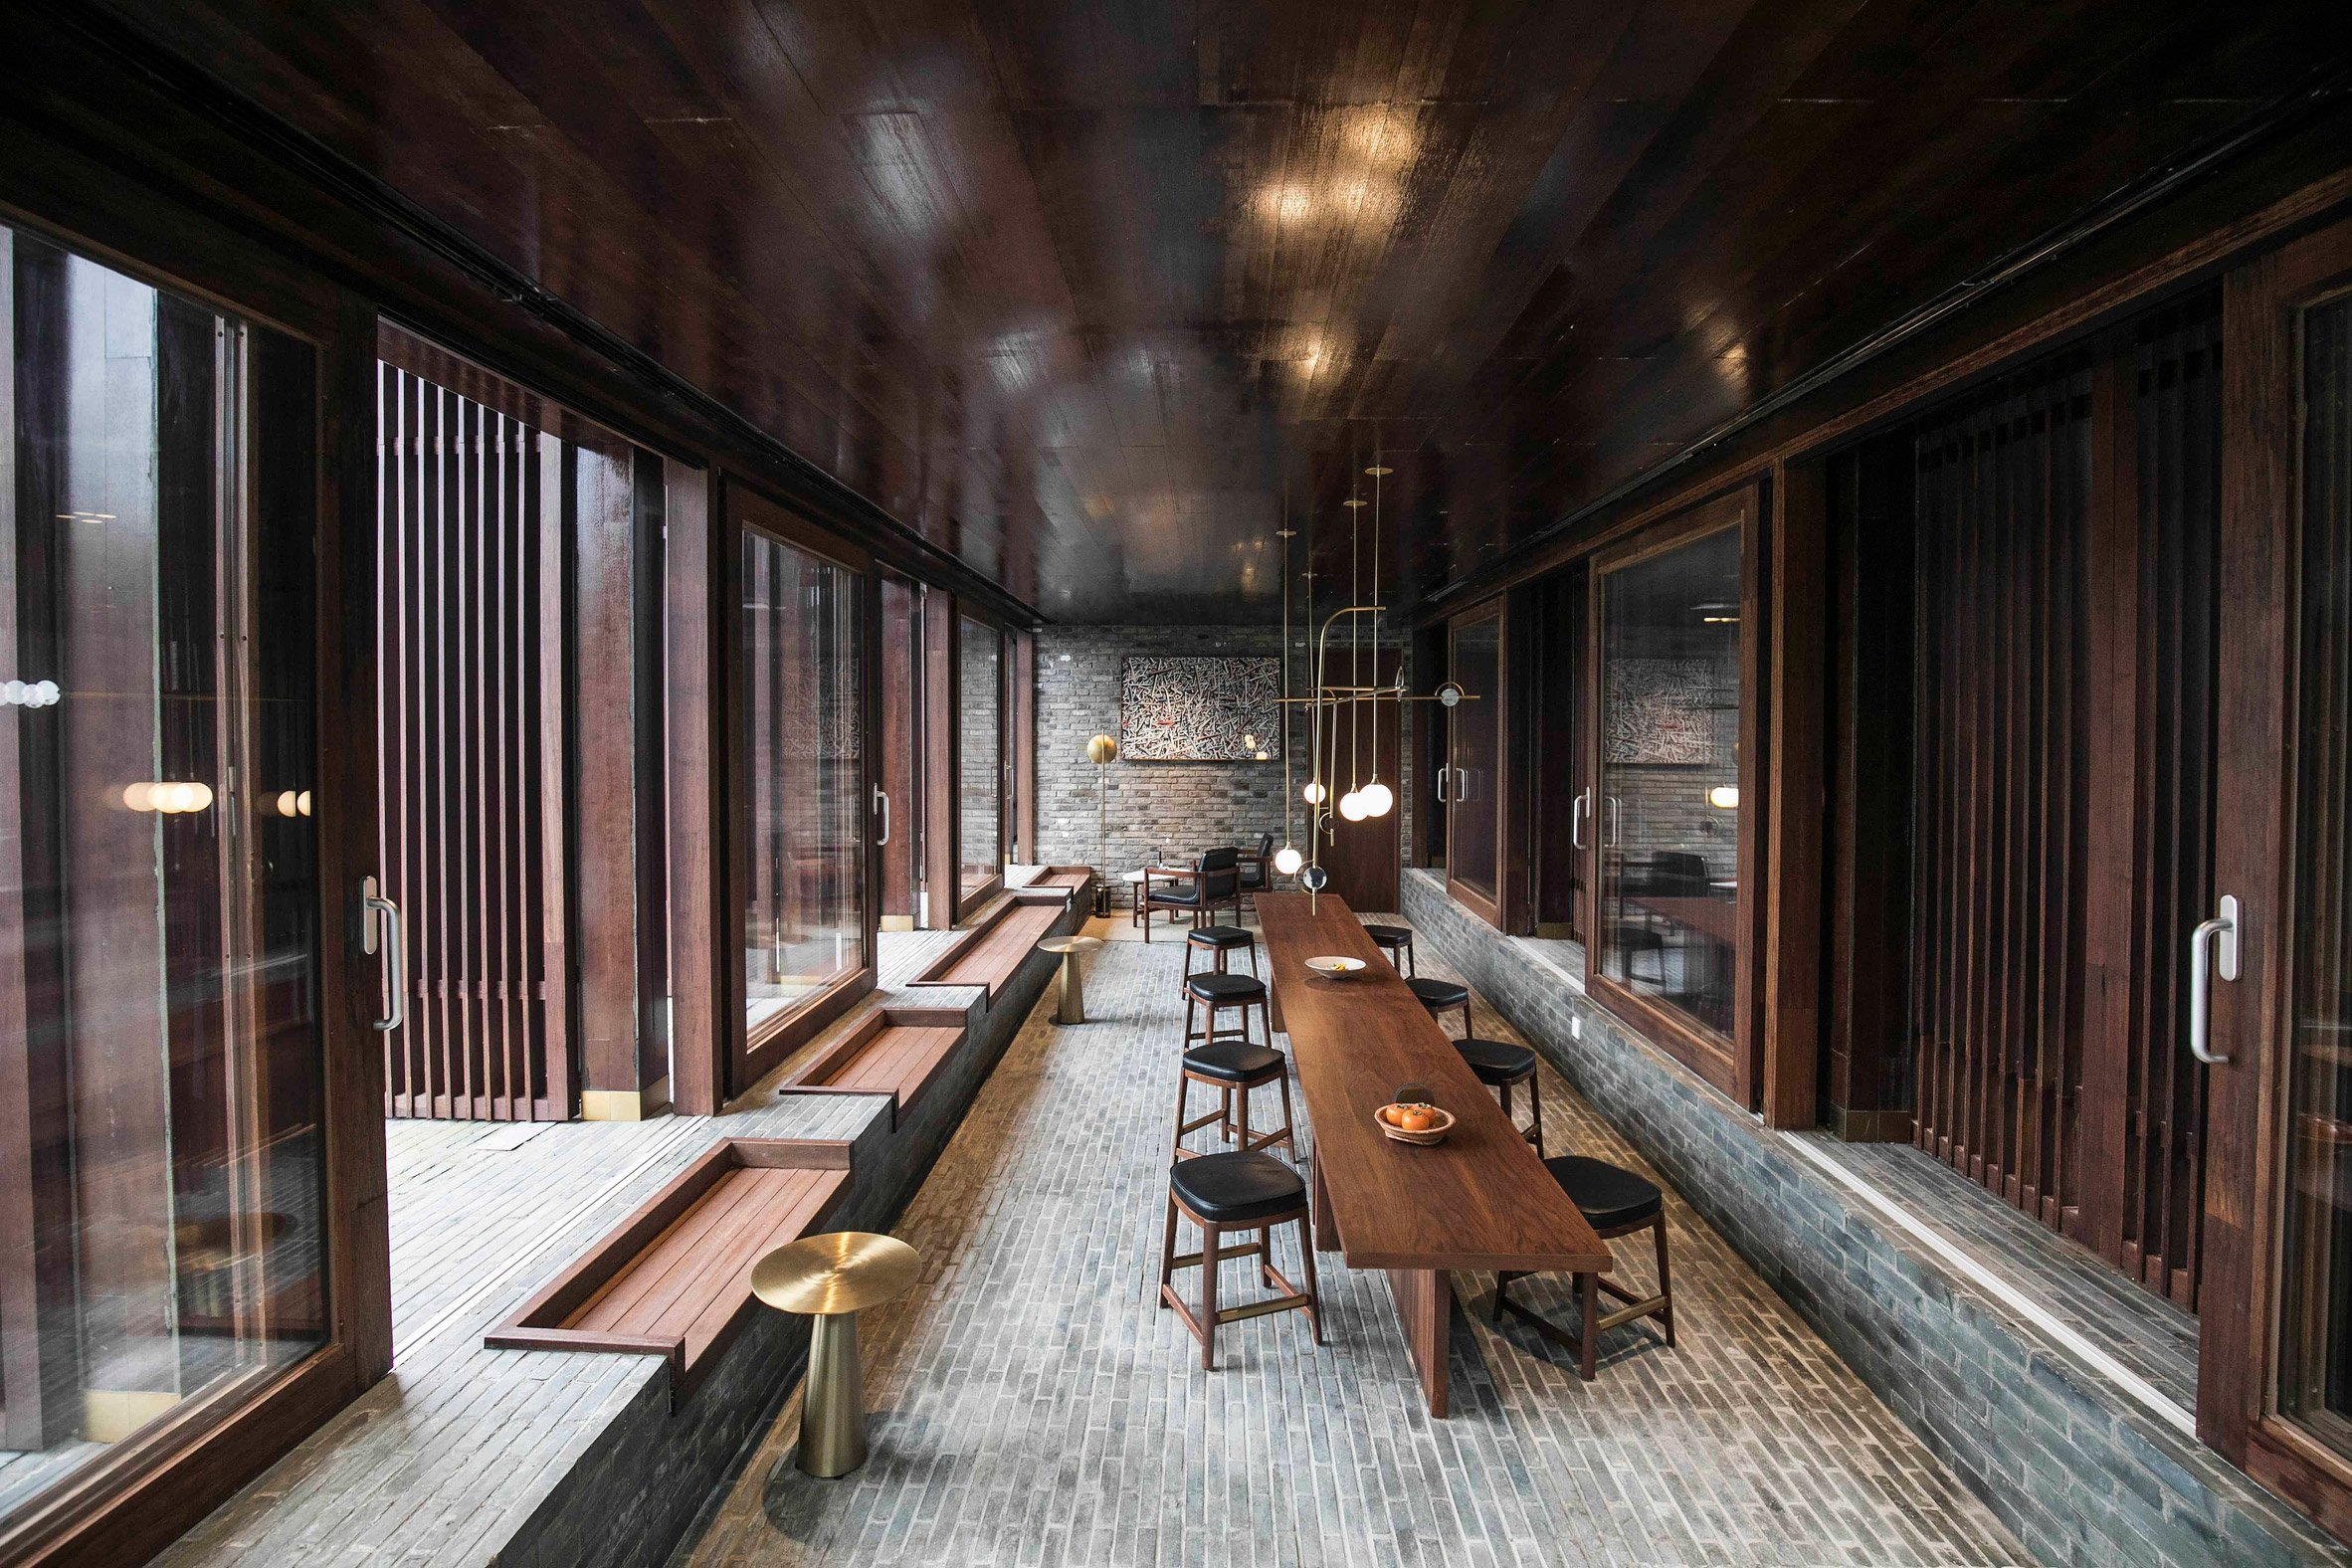 The Tsingpu Yangzhou Retreat by Neri&Hu won New Concept of the Year at the 2019 AHEAD Asia Awards